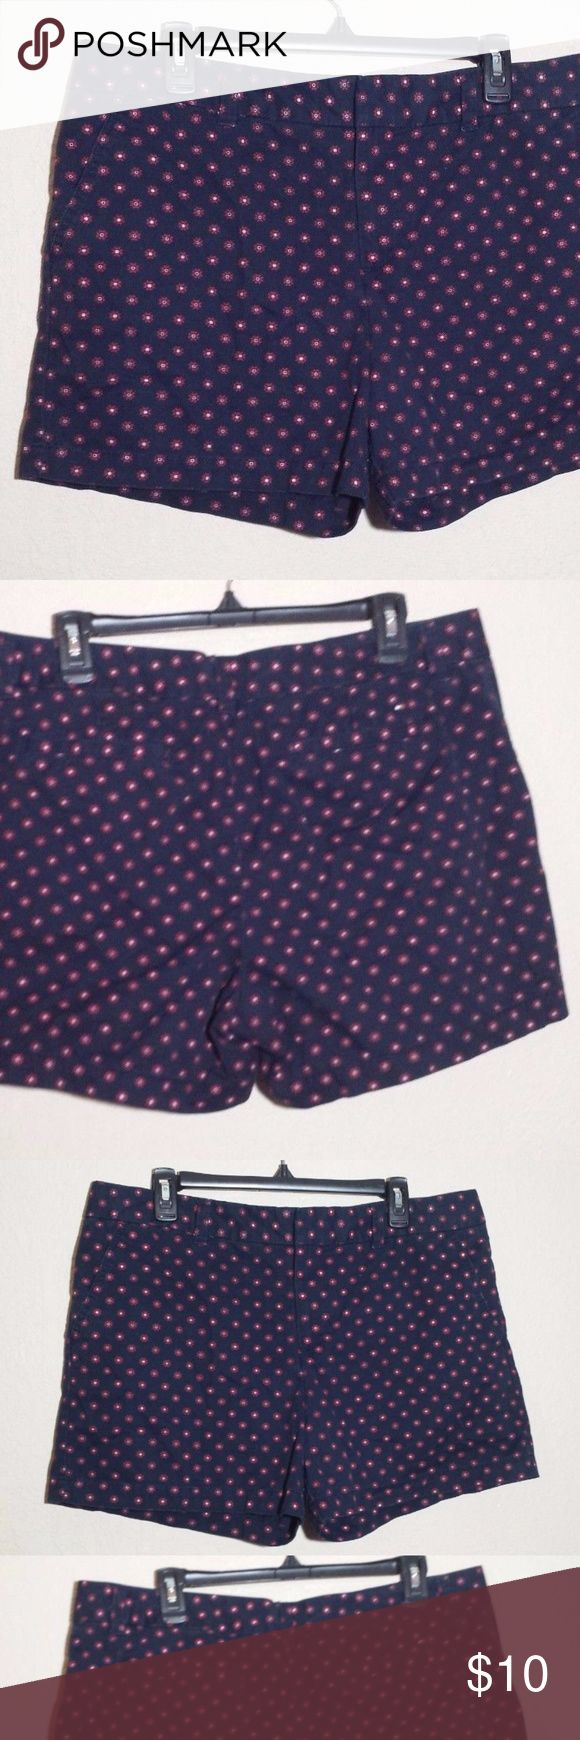 """Tommy Hilfiger Navy Blue & Red Polka Dot Shorts You are buy a Tommy Hilfiger Women's Navy Blue & Red Polka Dot Shorts  Size: 14  Waist: 18""""  Rise: 10 1/2""""  Hip width: 22""""  Hem width: 13""""  Excellent condition with no stains, rips or damage. Tommy Hilfiger Shorts"""